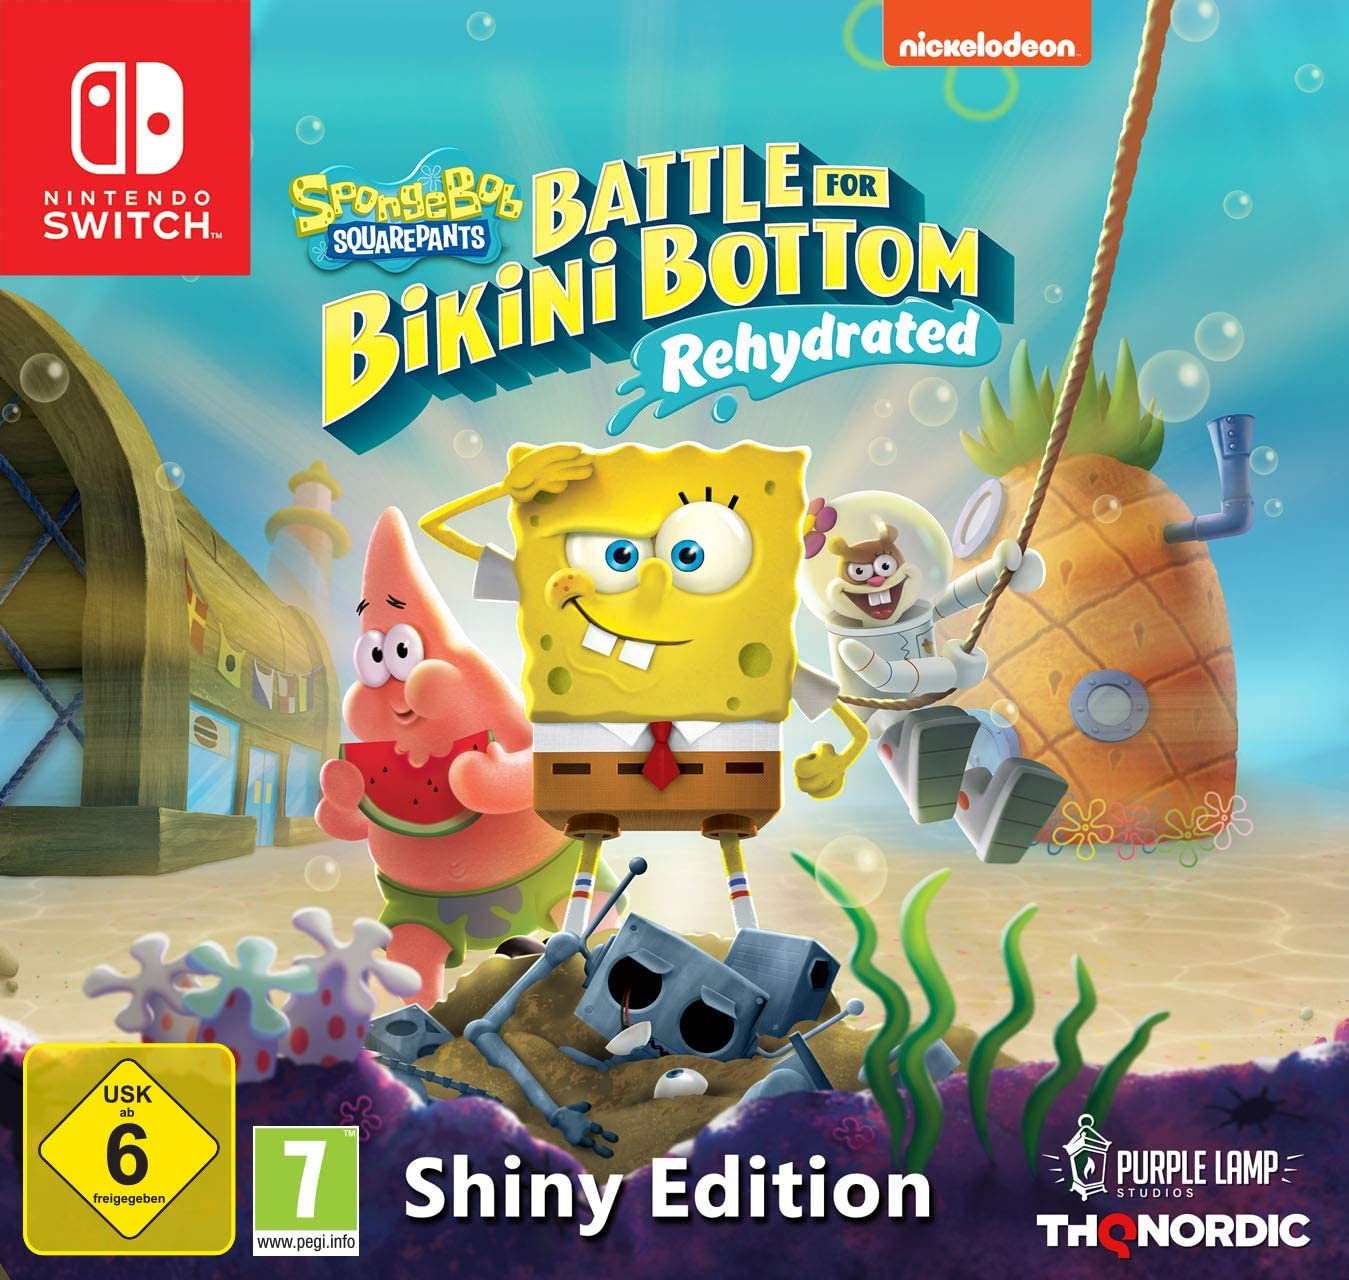 Spongebob SquarePants: Battle for Bikini Bottom Rehydrated - Edición Shiny (Nintendo Switch): Amazon.es: Videojuegos